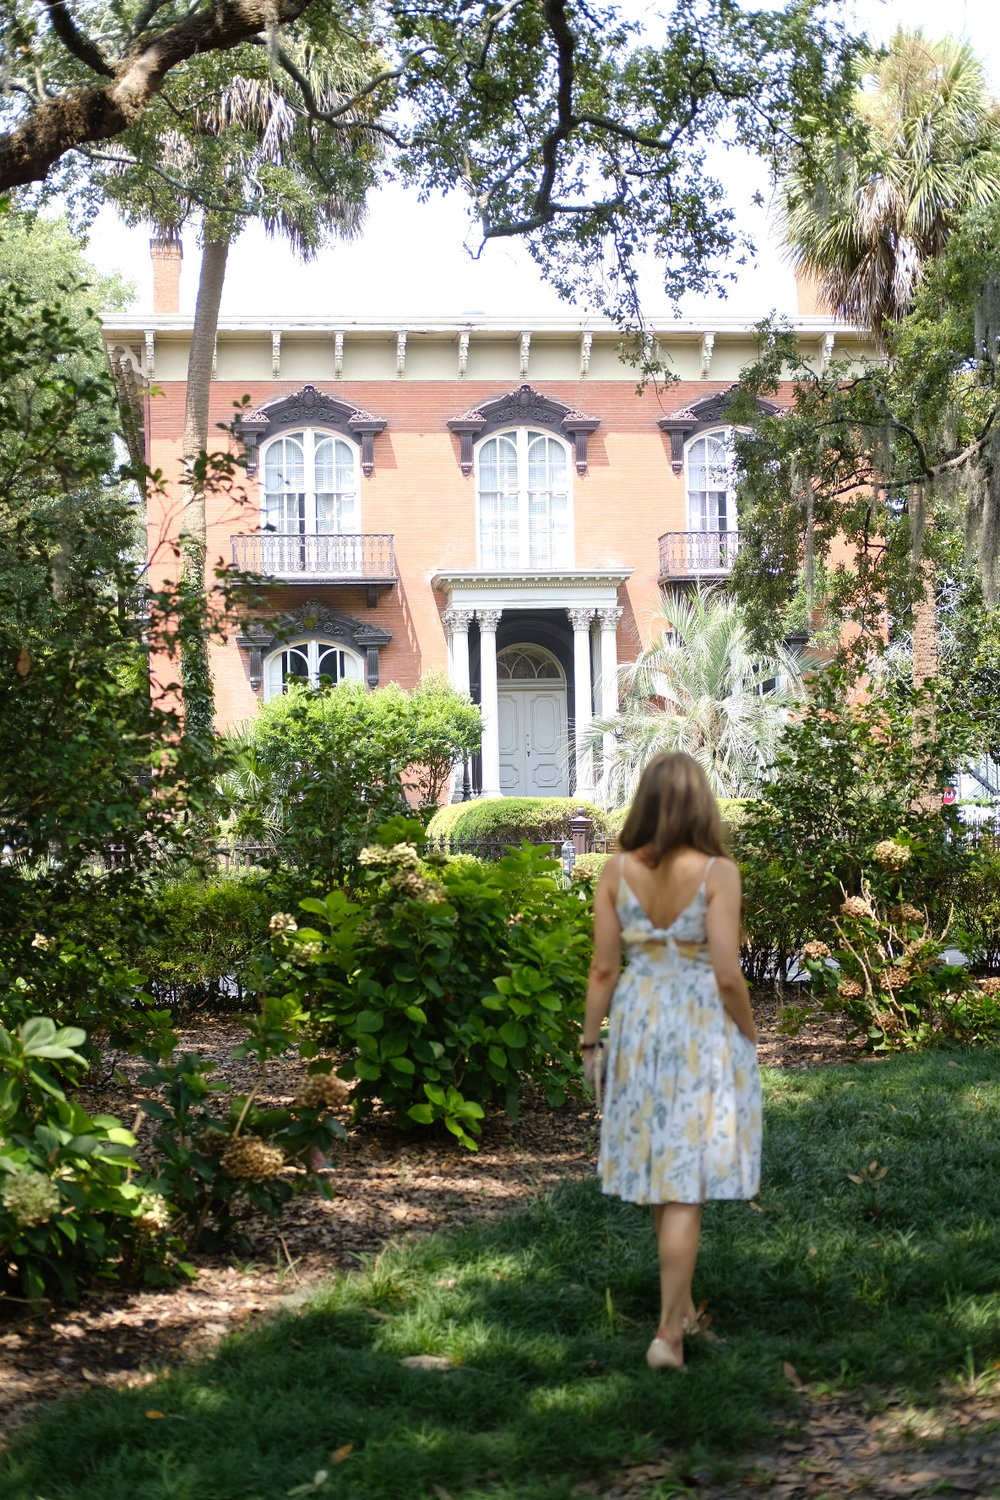 Brenna Michaels in front of the Mercer House in Savannah, Georgia